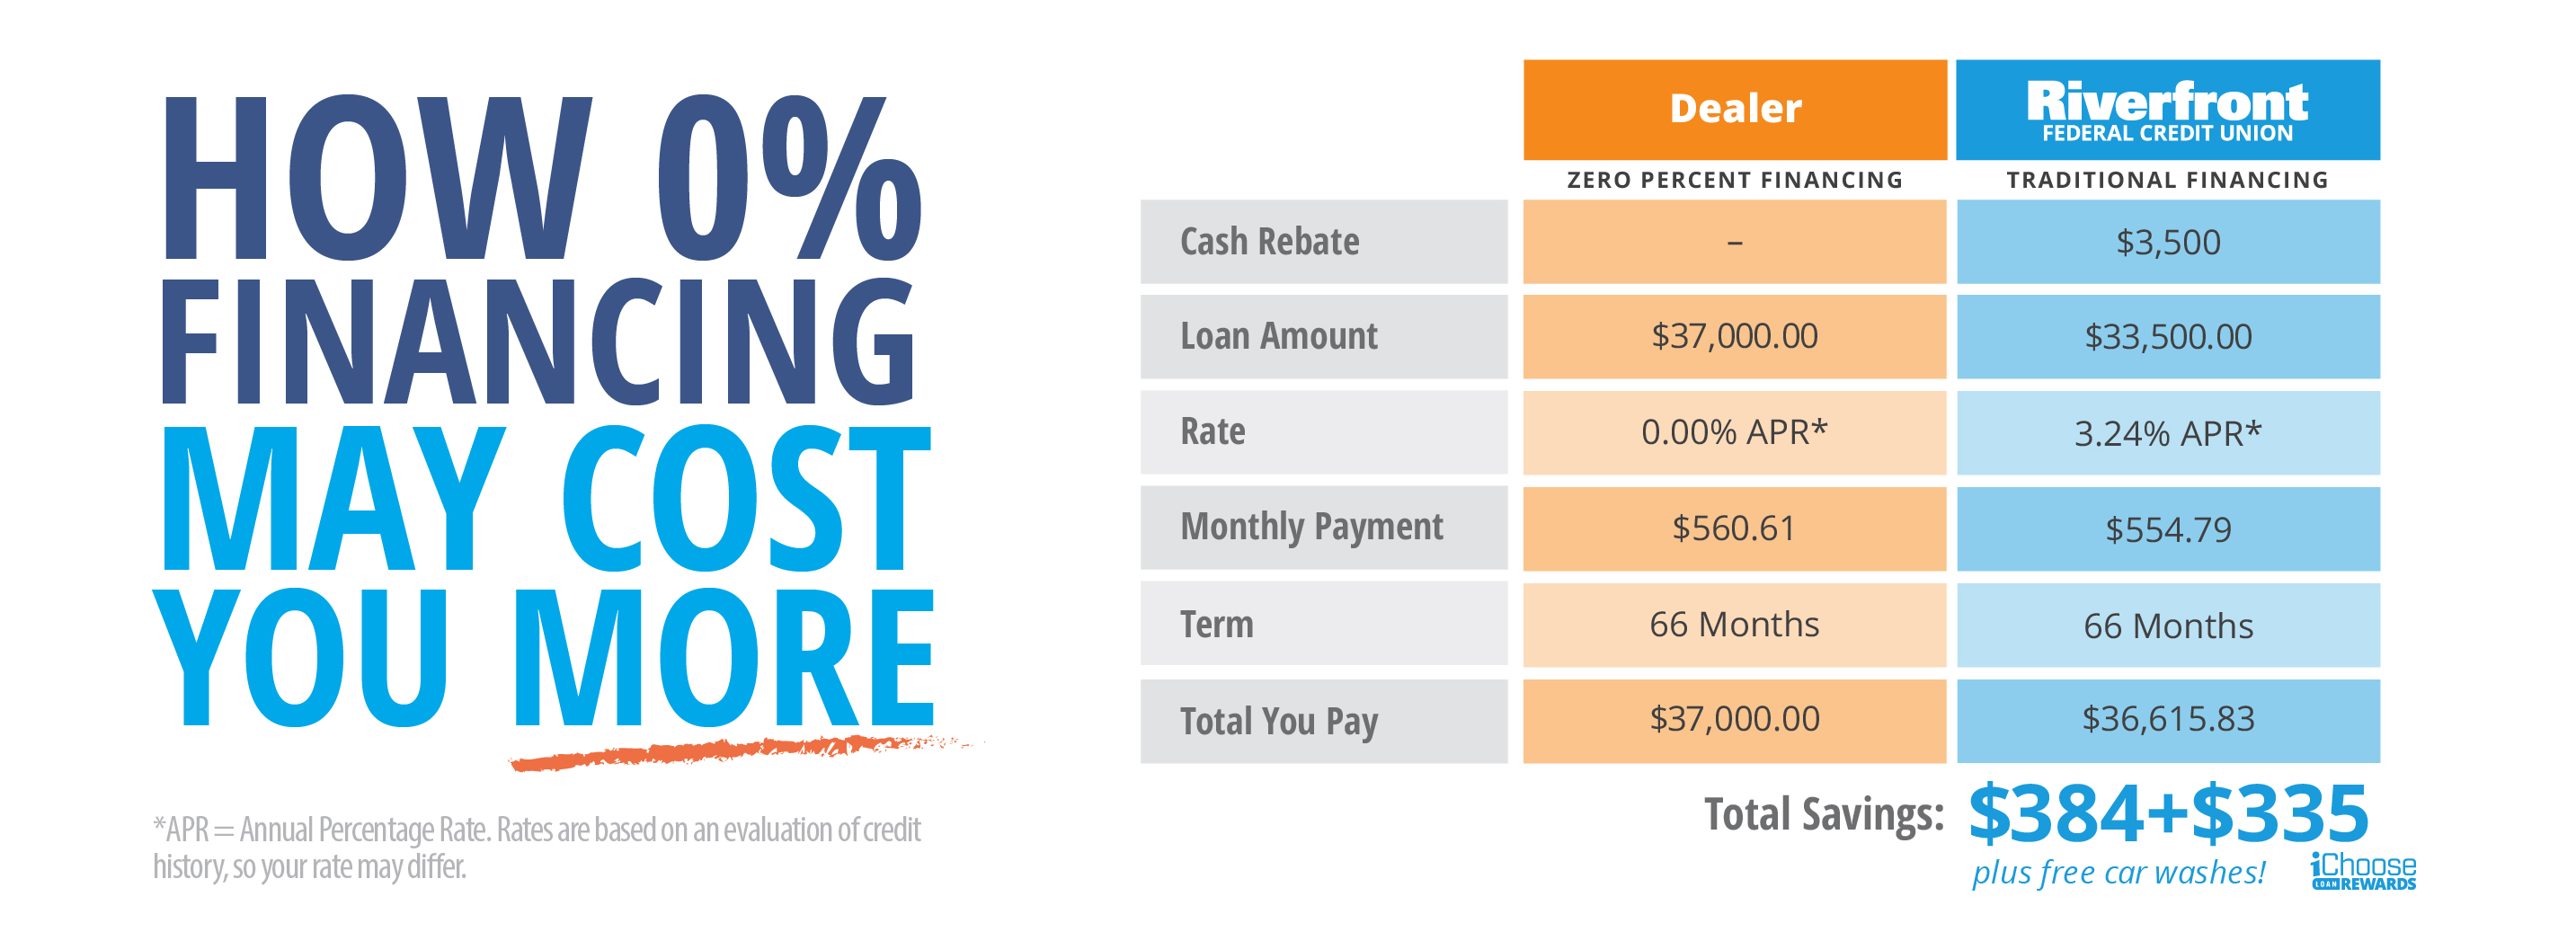 How zero percent dealer financing may cost you more.